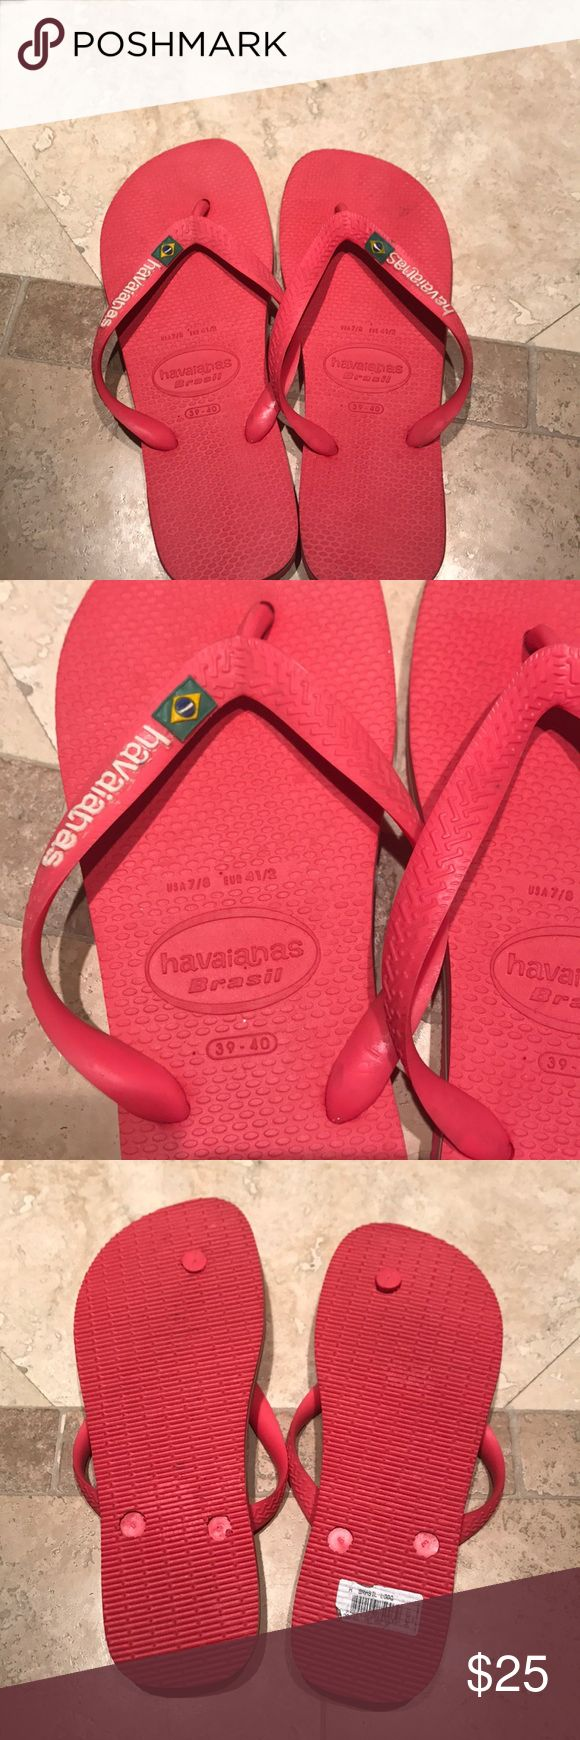 Havaianas flip flops purchased in Brazil Red flip flops given to me as a gift purchased in Brazil. Never worn. They say size 7/8 but they fit like a 8.5/9. Awesome with the Brazilian flag on top and Brazil colors on sides.  No tags but brand new! Some markings on top from carrying from Brazil. Havaianas Shoes Sandals